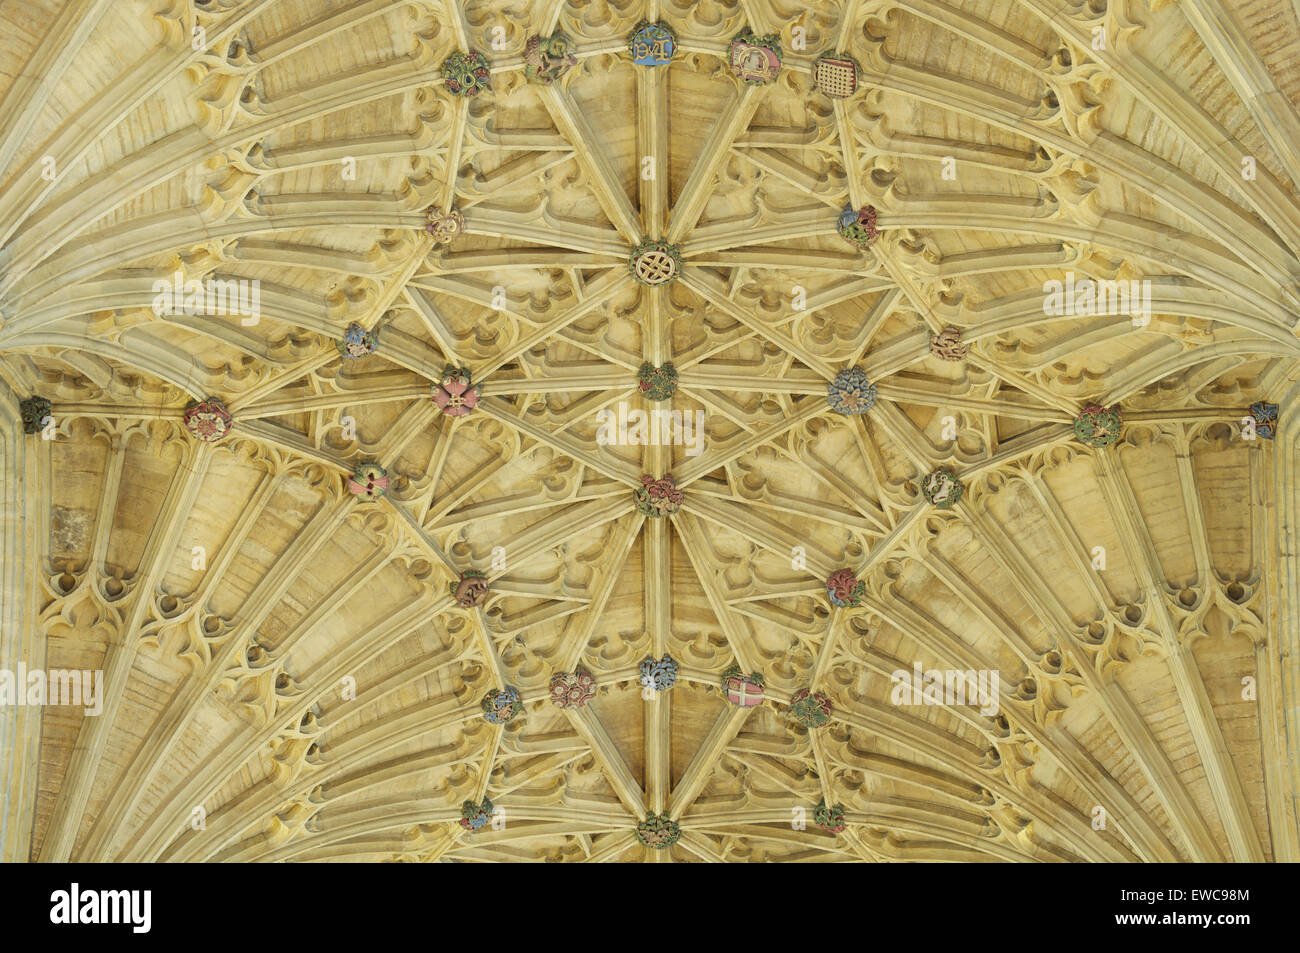 The magnificent medieval Gothic fan vaulted ceiling of Sherborne Abbey with its colourful ornamental bosses. Dorset, - Stock Image